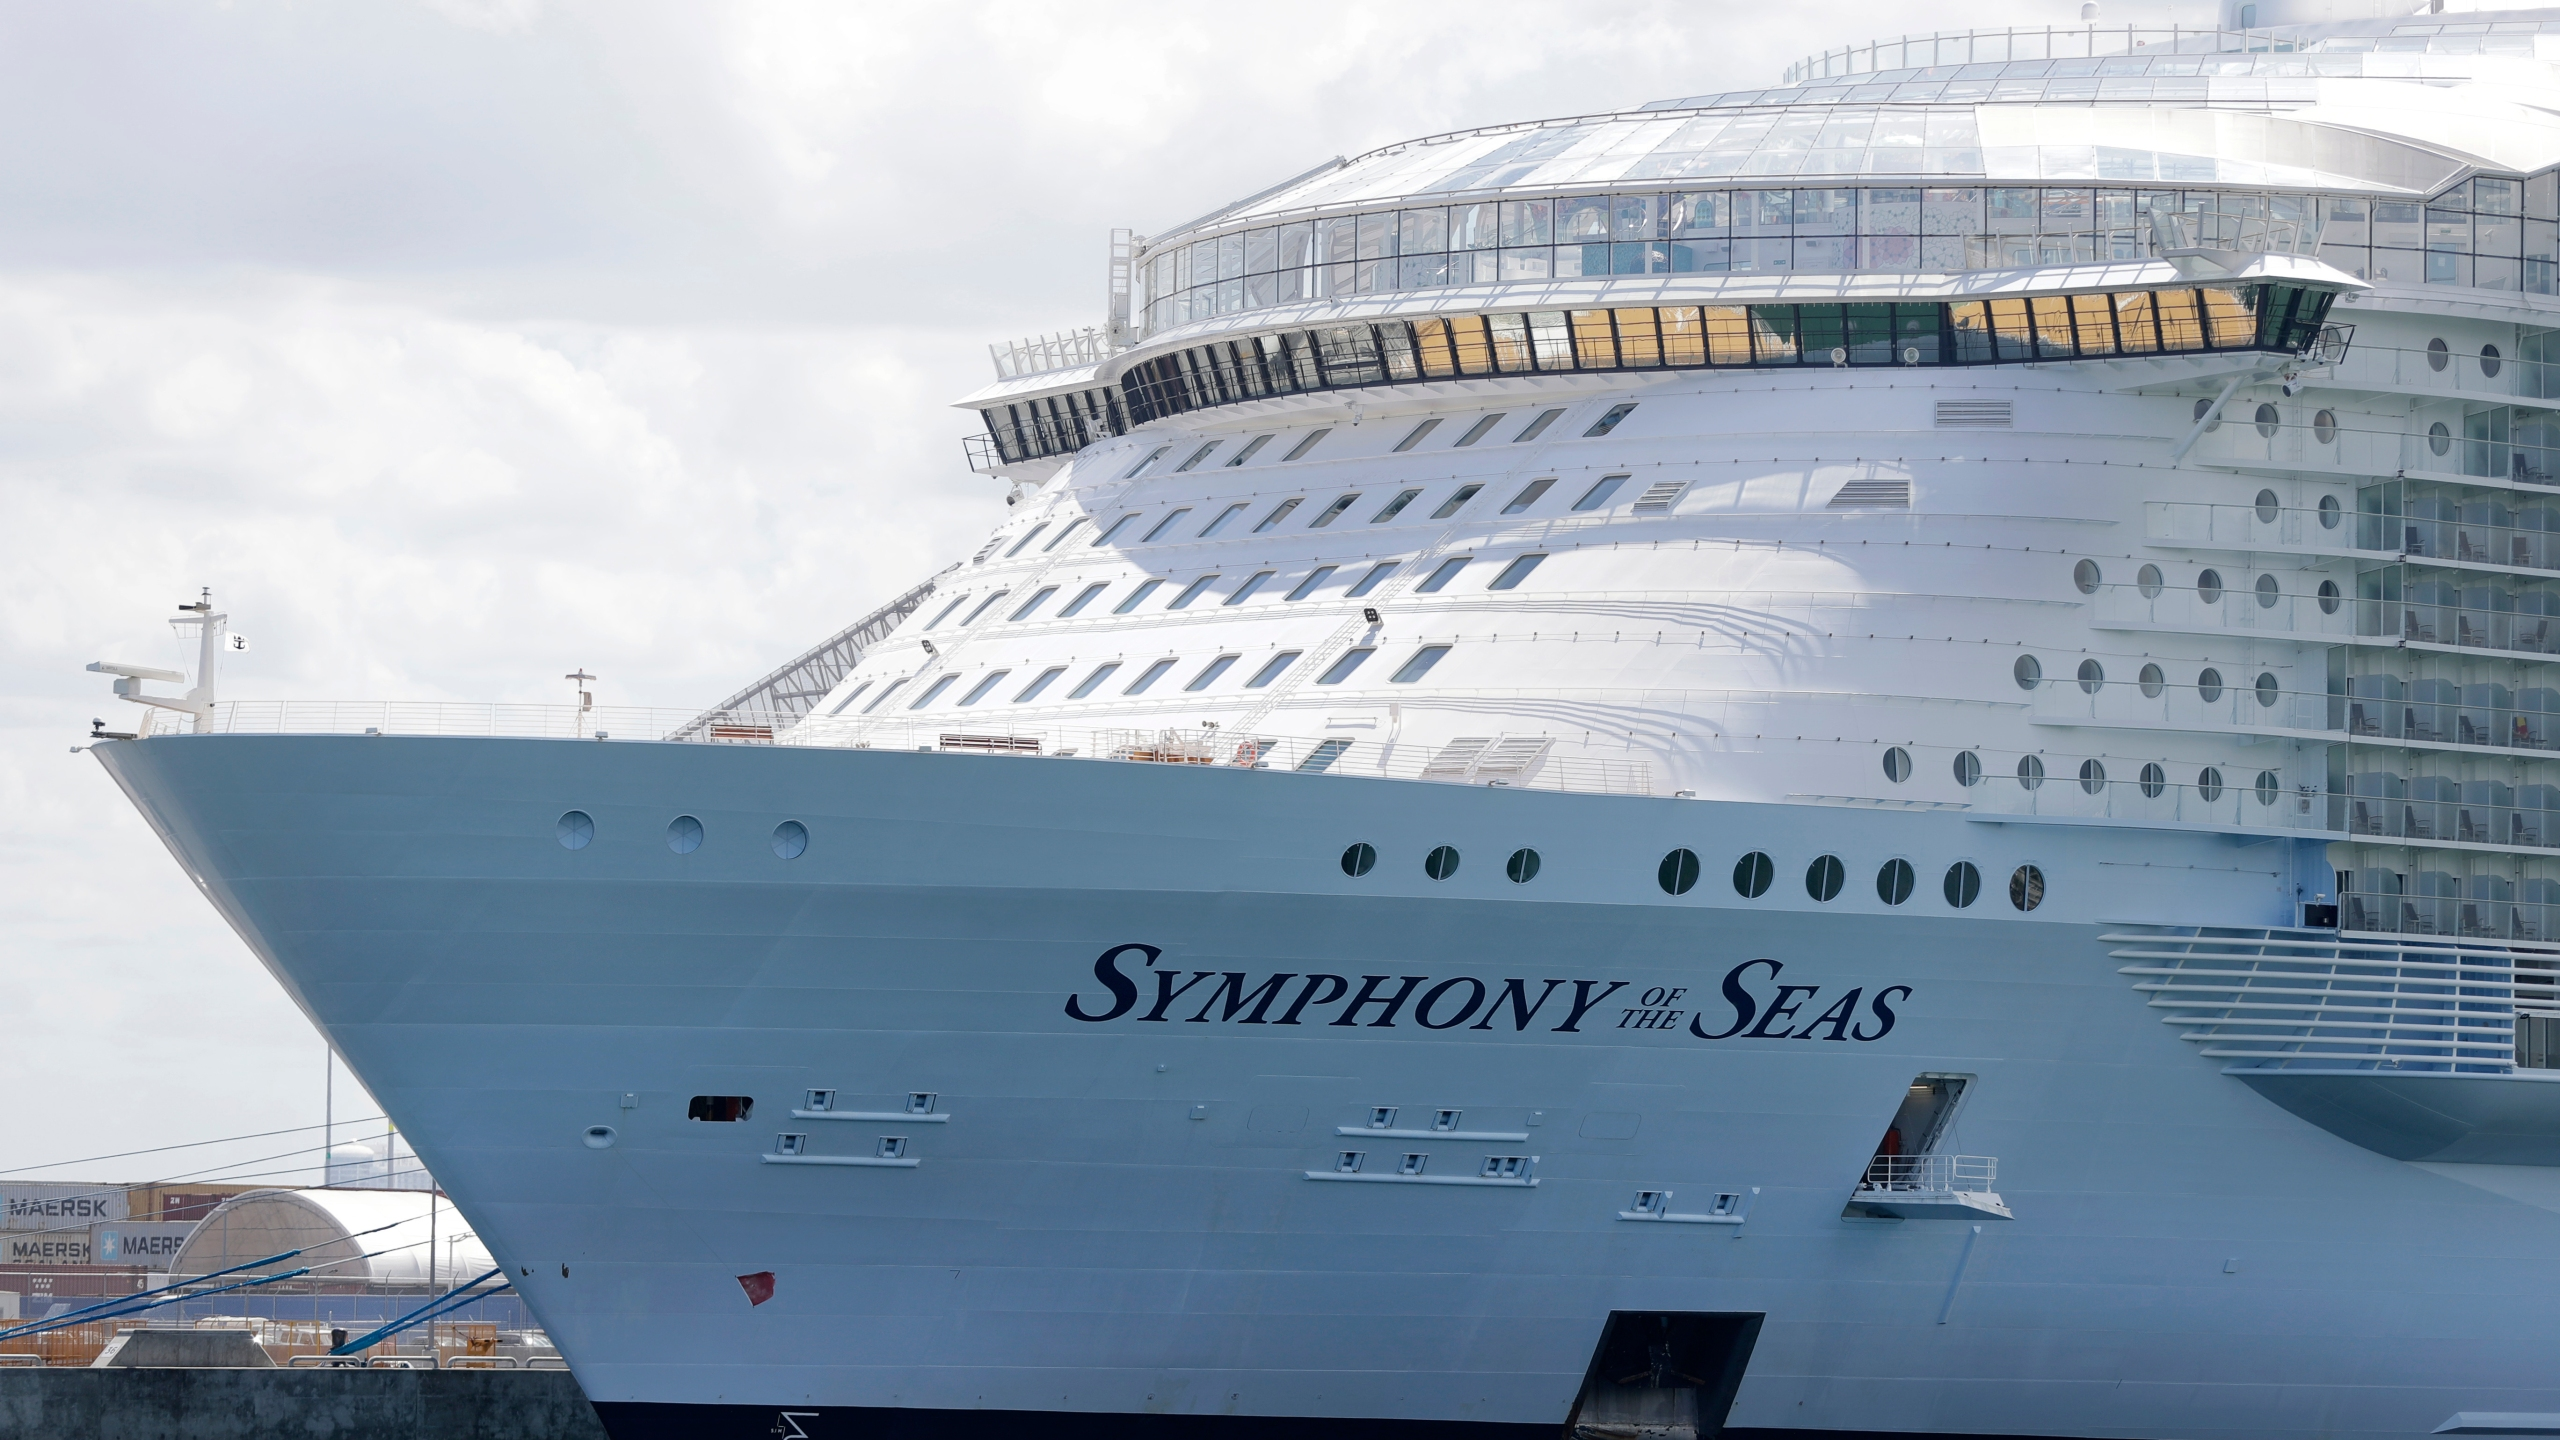 The Symphony of the Seas cruise ship is shown docked at PortMiami, in a Wednesday, May 20, 2020, file photo, in Miami. Cruise lines can soon begin trial voyages in U.S. waters. They'll have to carry some volunteer passengers, who will have to wear face masks and observe social distancing while on board. The Centers for Disease Control and Prevention gave ship operators final technical guidelines Wednesday, May 5, 2021 for the trial runs. (AP Photo/Wilfredo Lee, File)